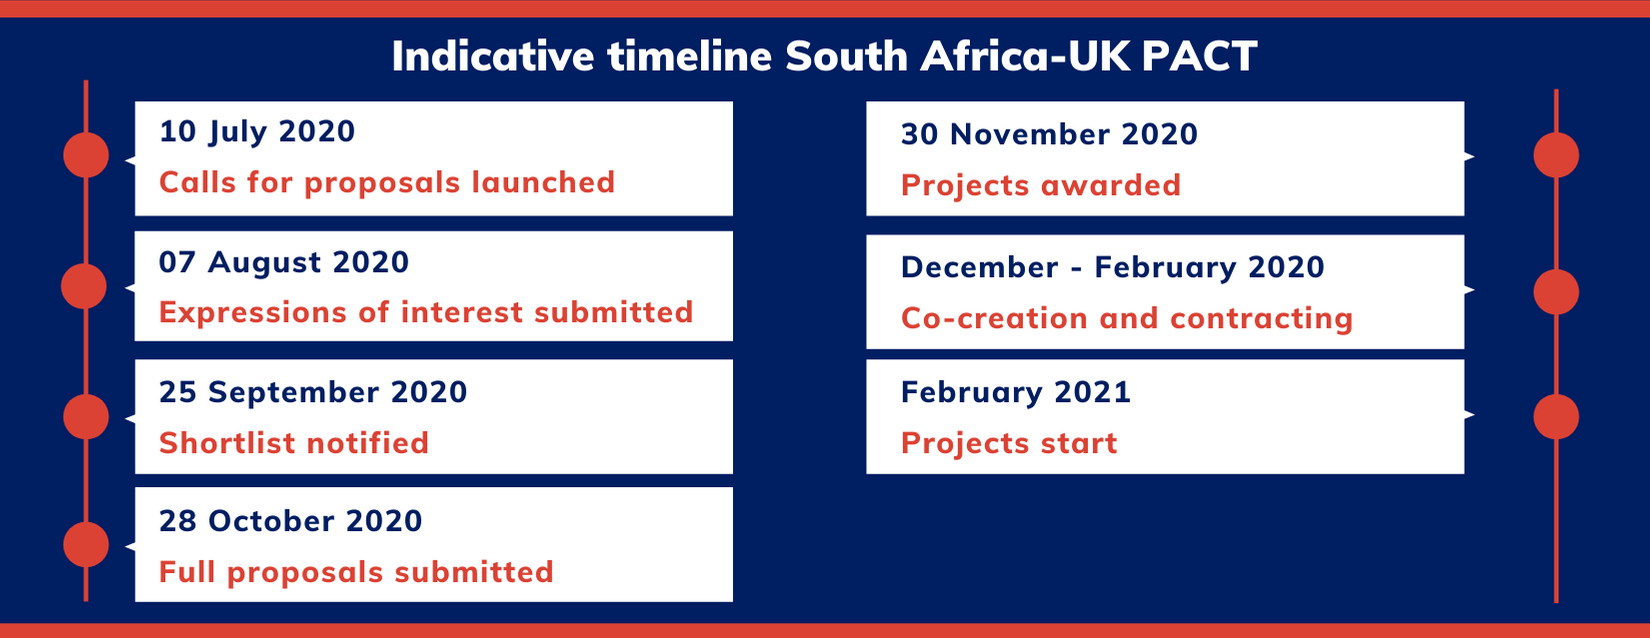 South-Africa UK PACT timeline